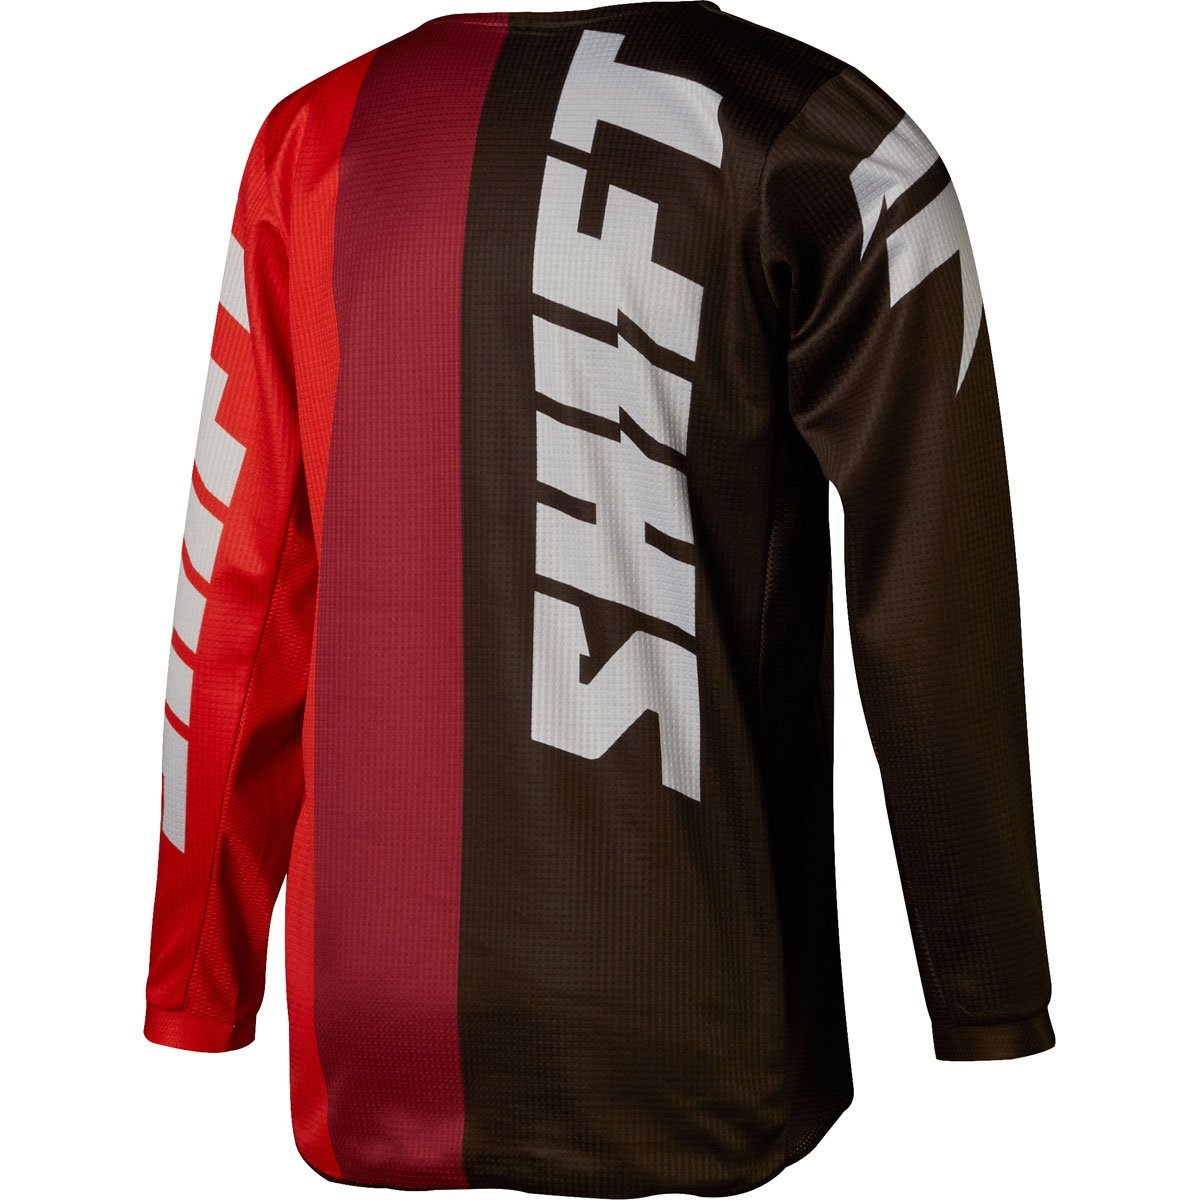 Shift 2018 Youth White Label Tarmac Jersey-Black/Red-YXL by Shift (Image #2)